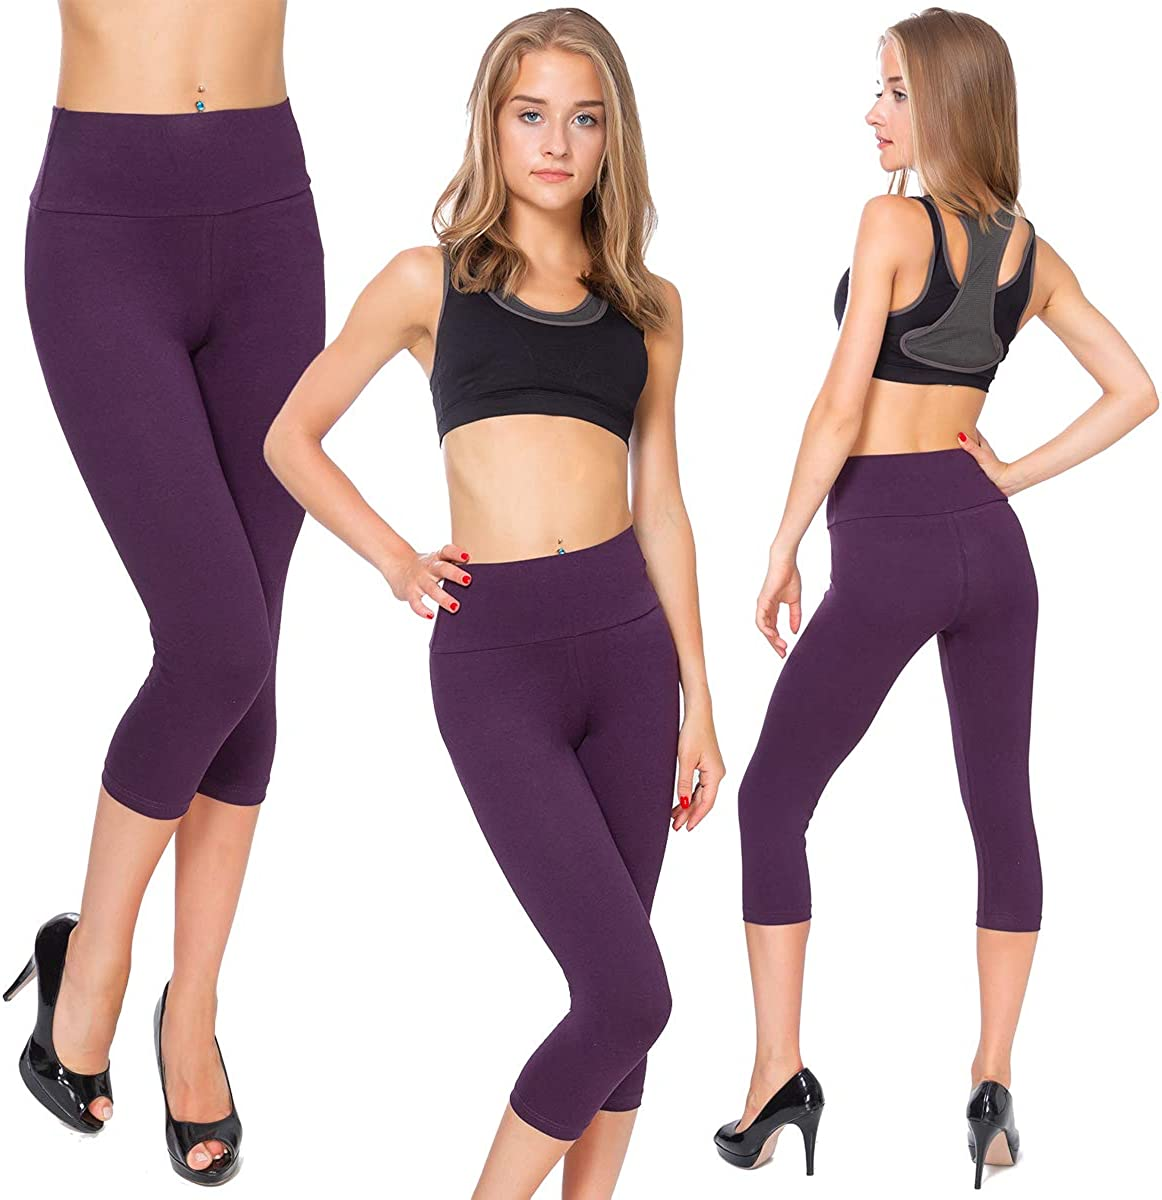 MITAAMI Cropped 3//4 Lenght High Waist Leggings with Control Panel Active Pants LWP342